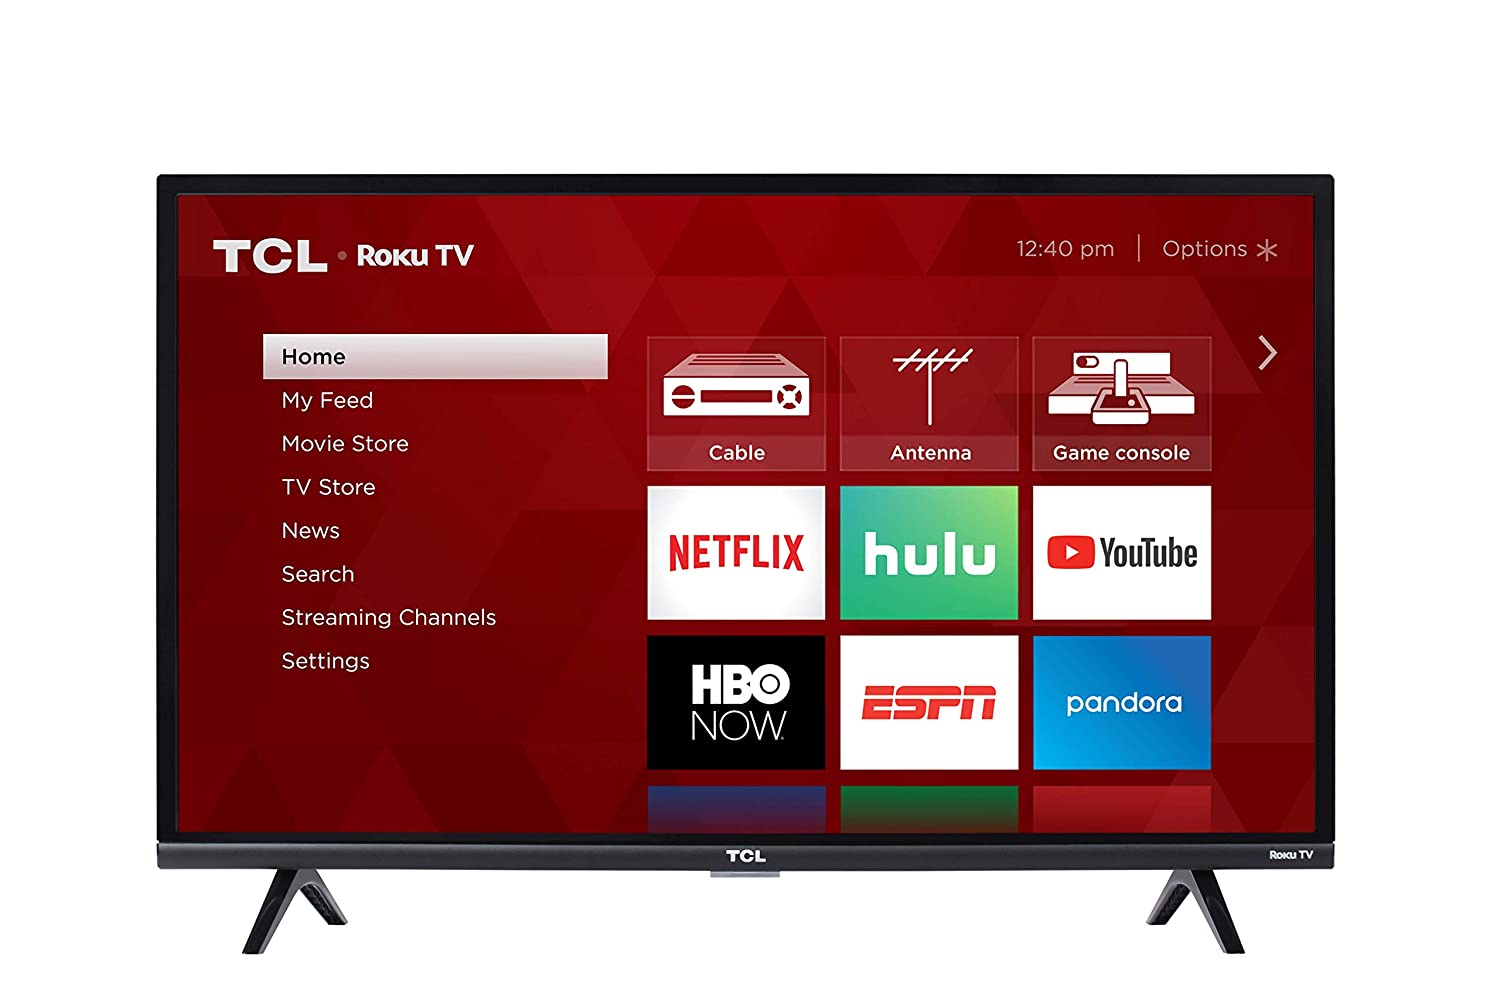 TCL 32-Inch 1080p Roku Smart LED TV